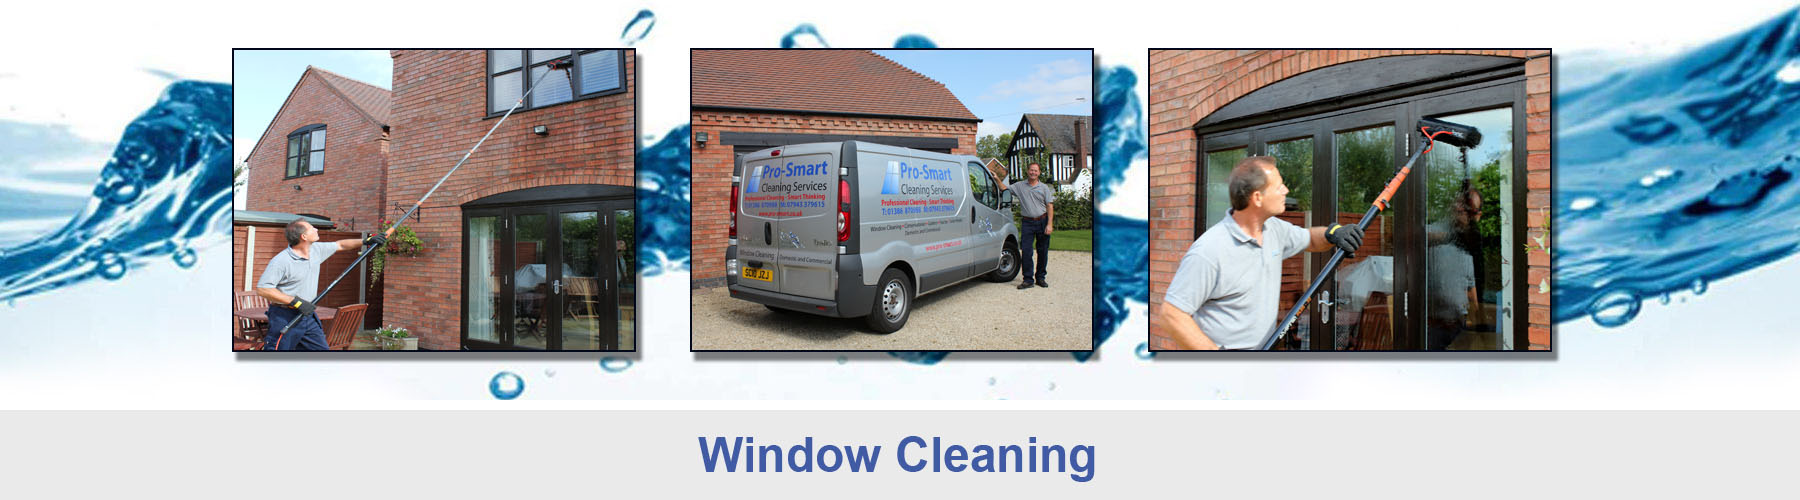 Window cleaning services in Worcestershire and Warwickshire